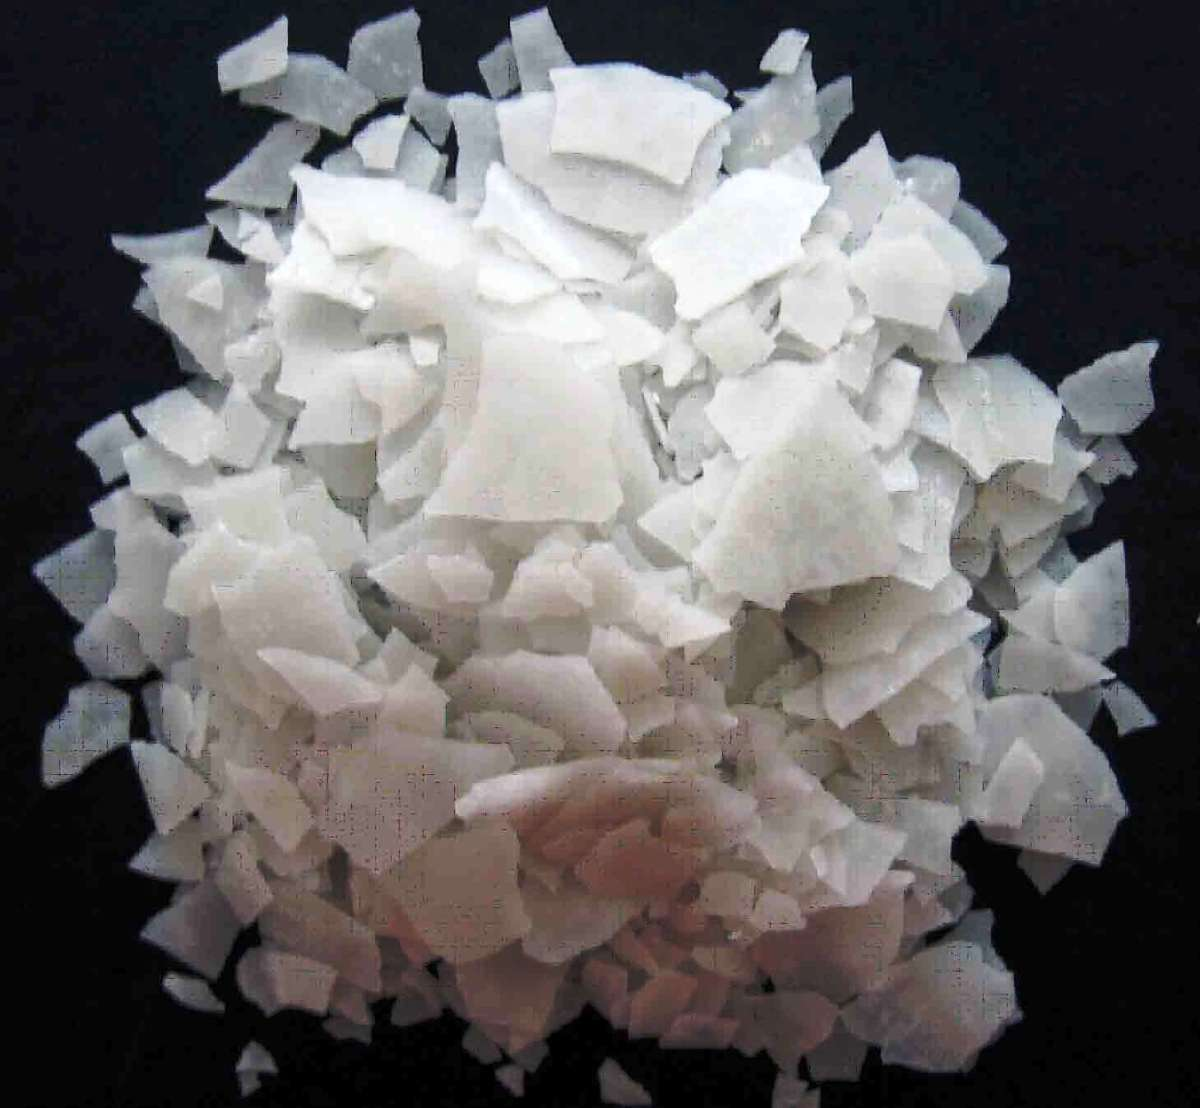 Calcium Chloride Versus Magnesium Chloride in Ice Melter Products